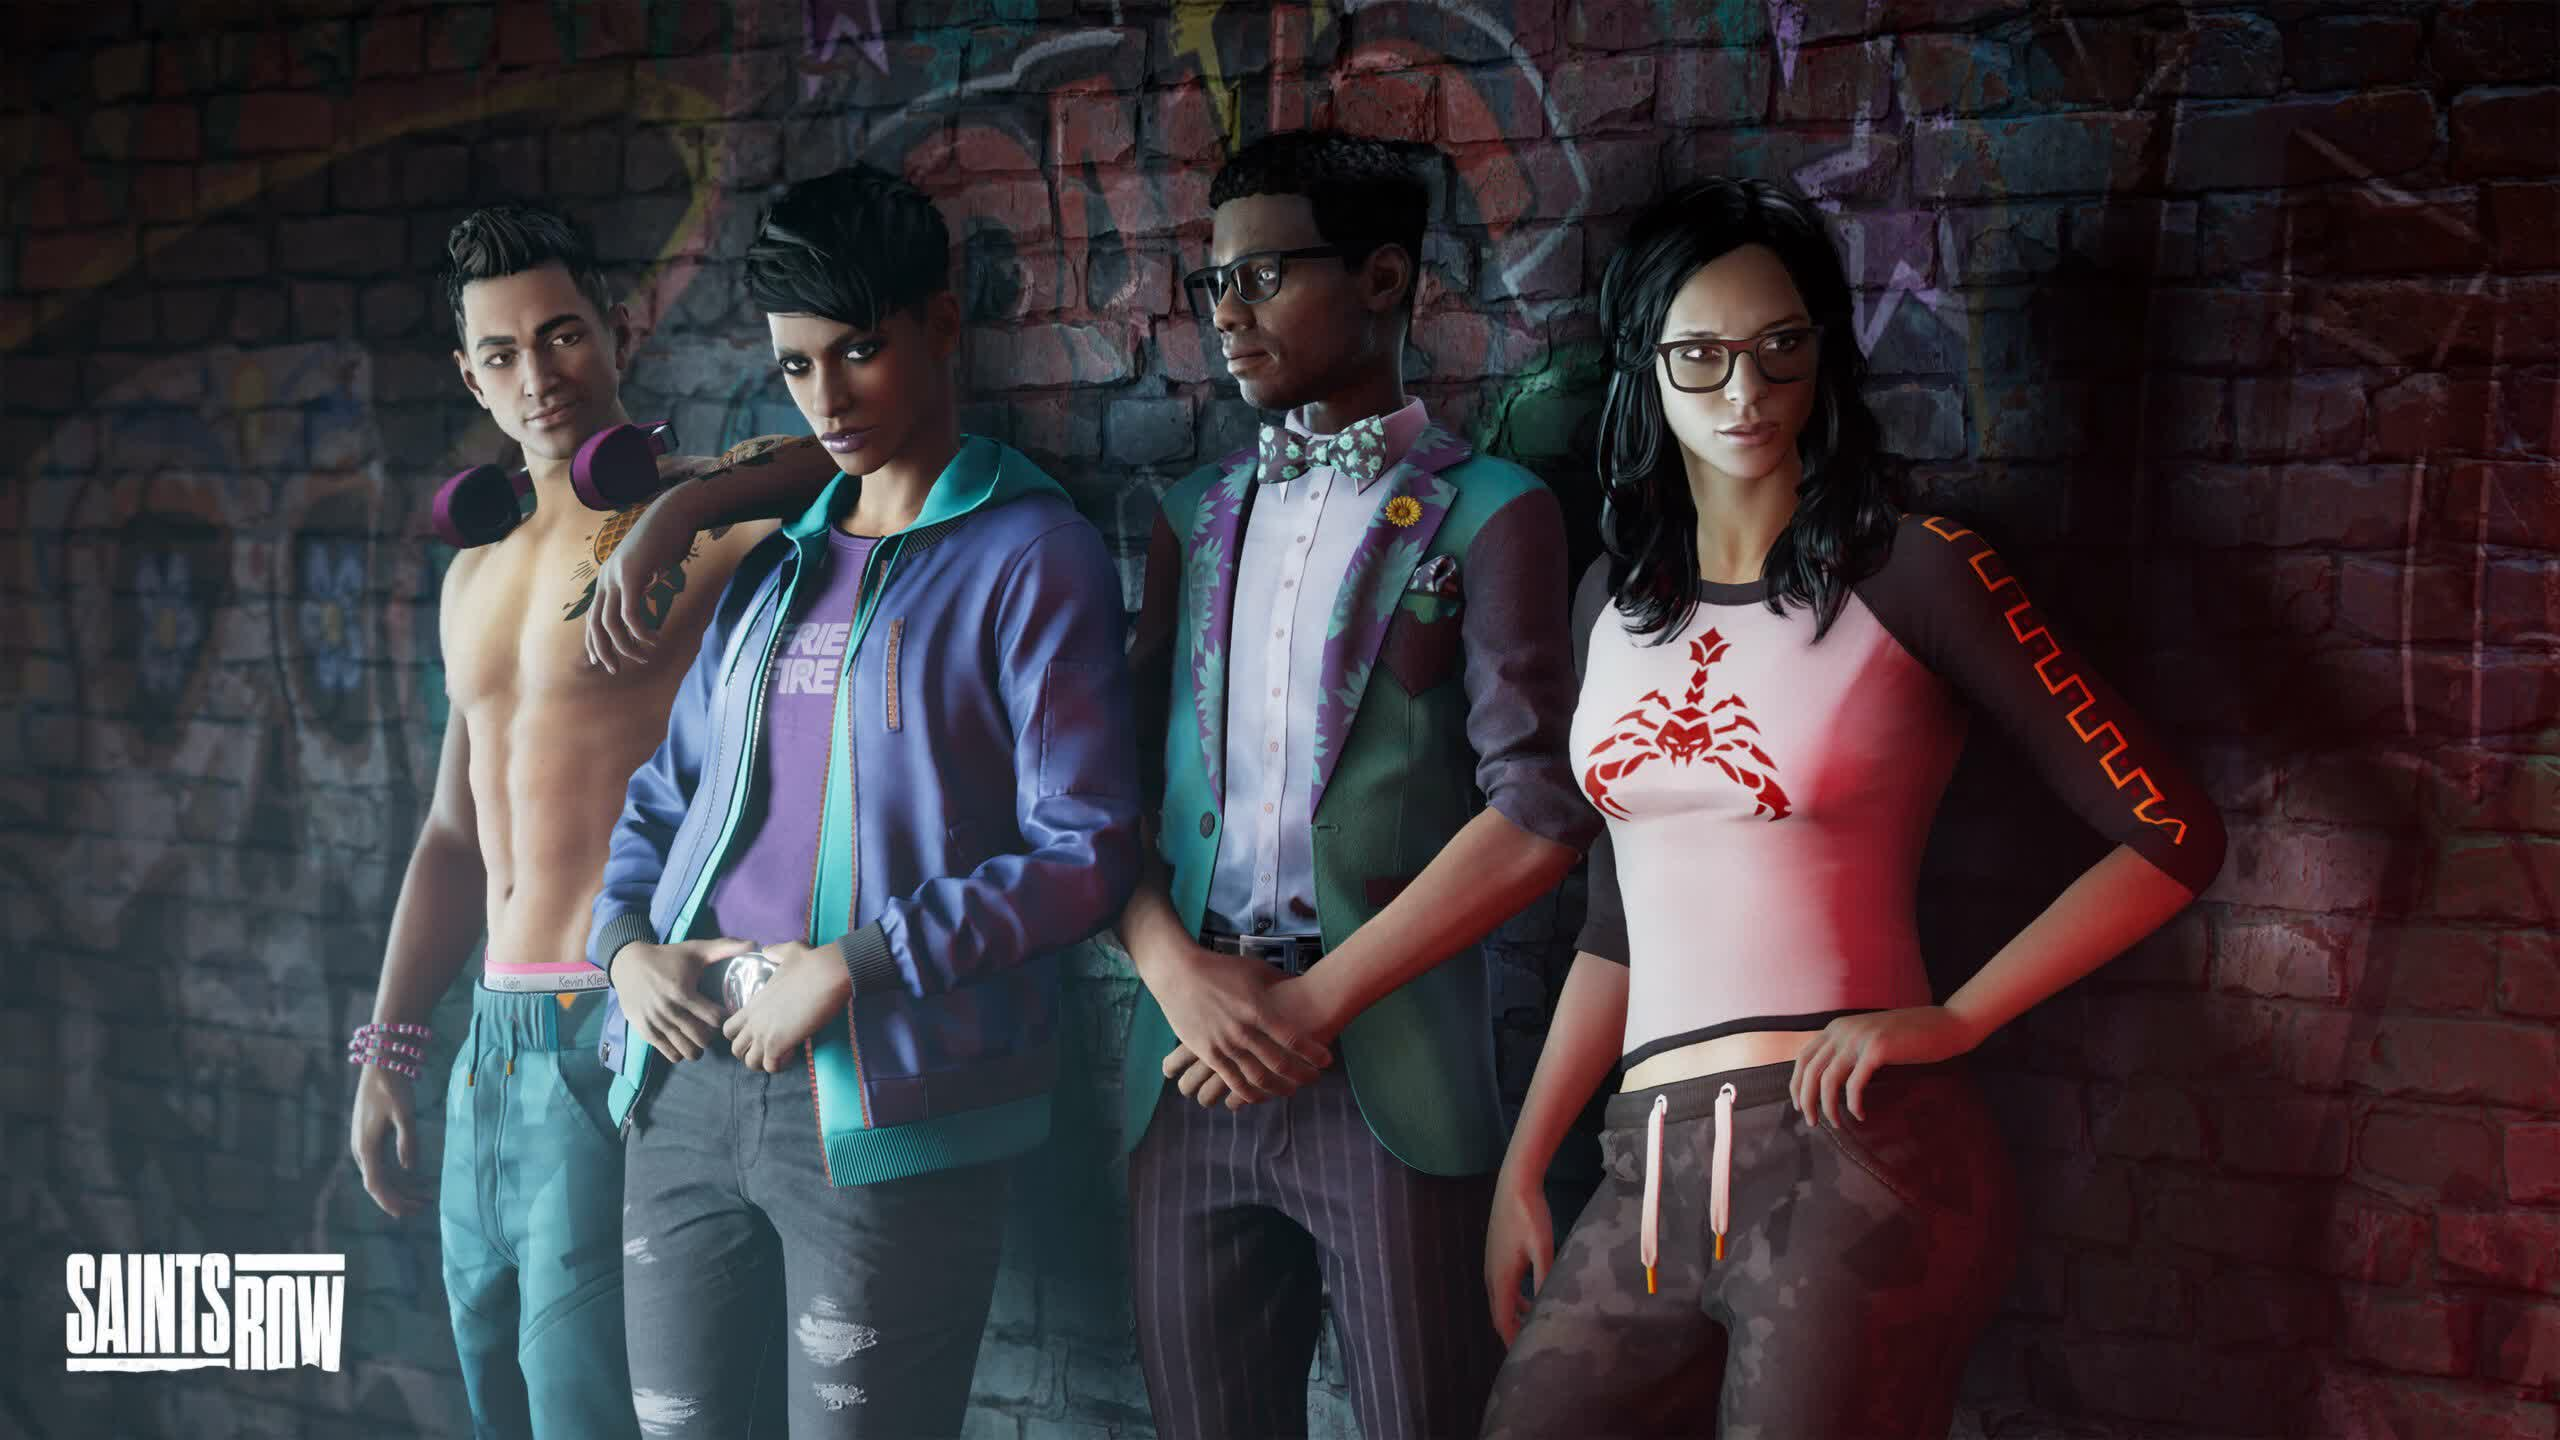 The internet reacts negatively to Saints Row reboot reveal, but developers say 'We are not backing down'